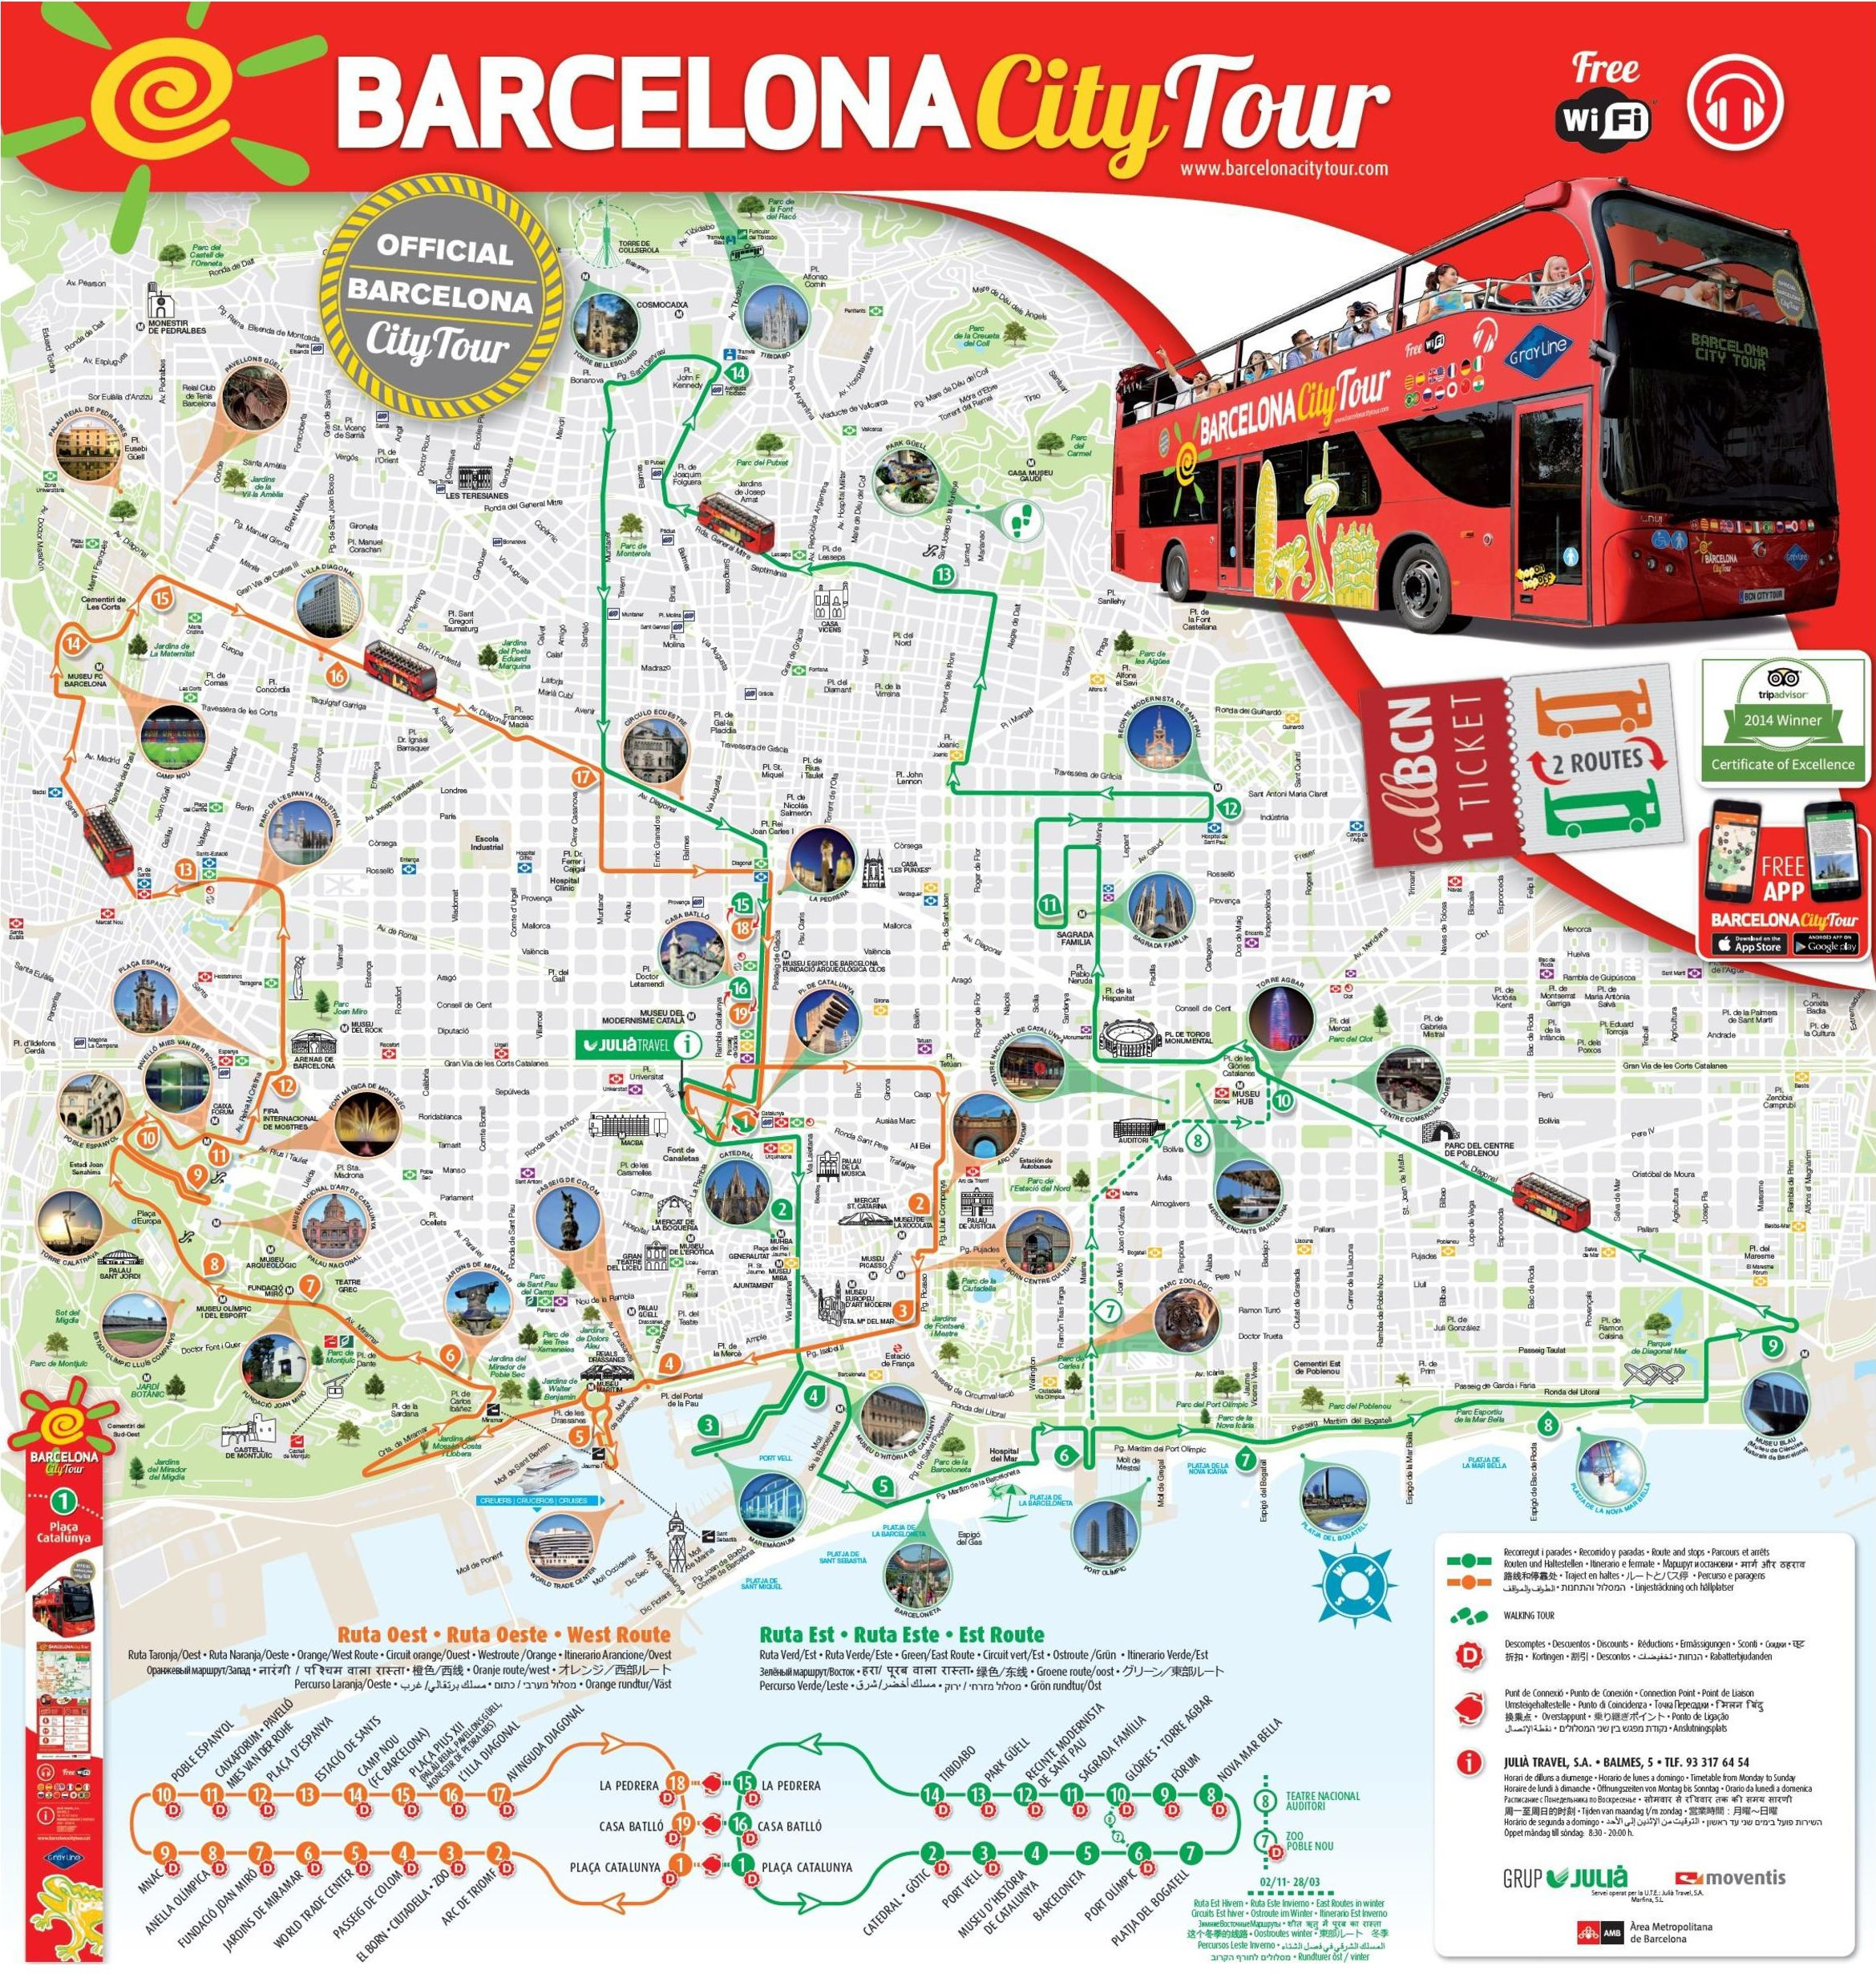 Carte De Barcelone Et Ses Environs.Carte De Barcelone Cartes Plans De Barcelone Sites